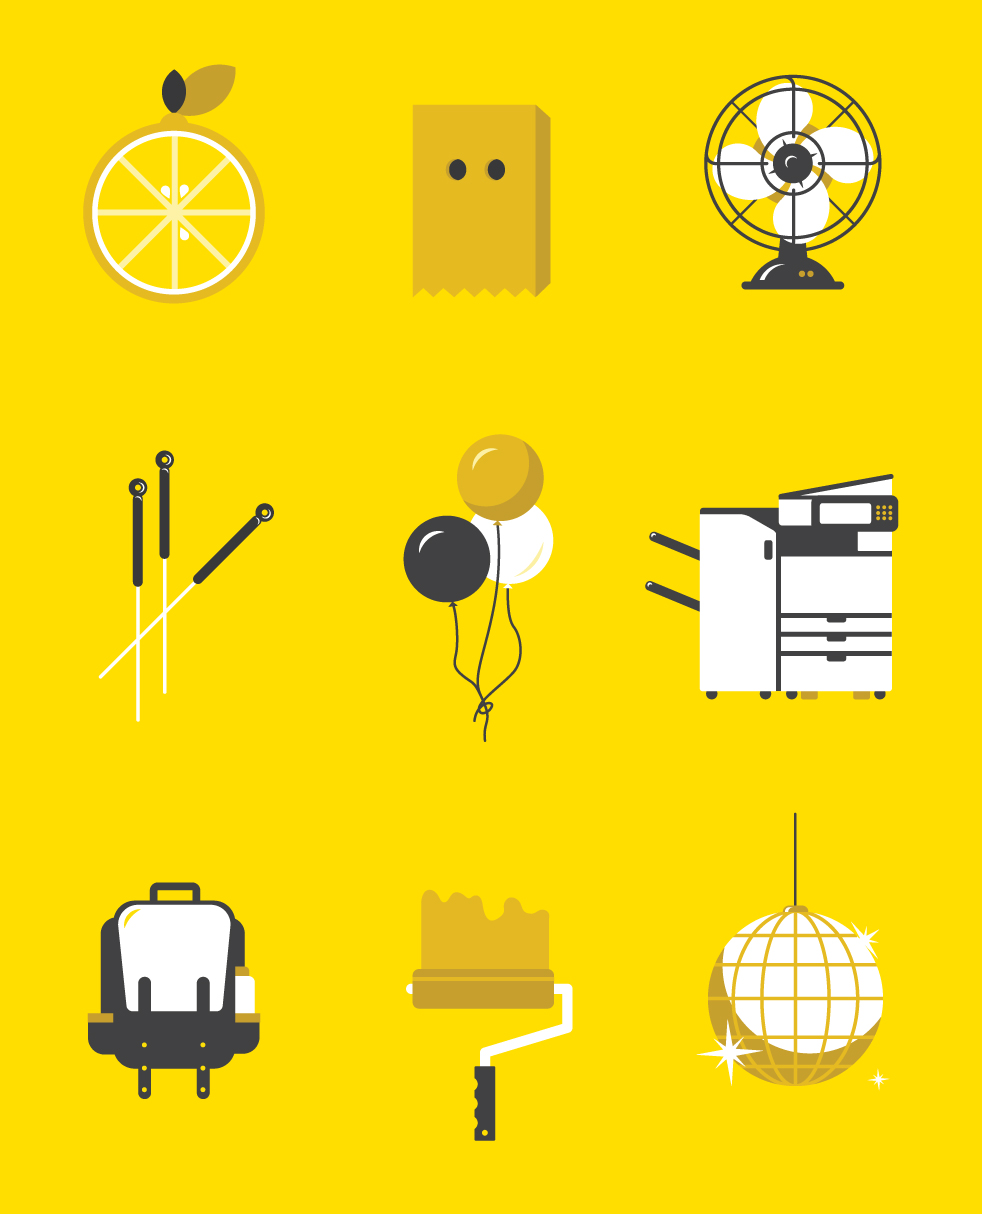 Illustrations from the Yellow Pages neighbourhood campaign.